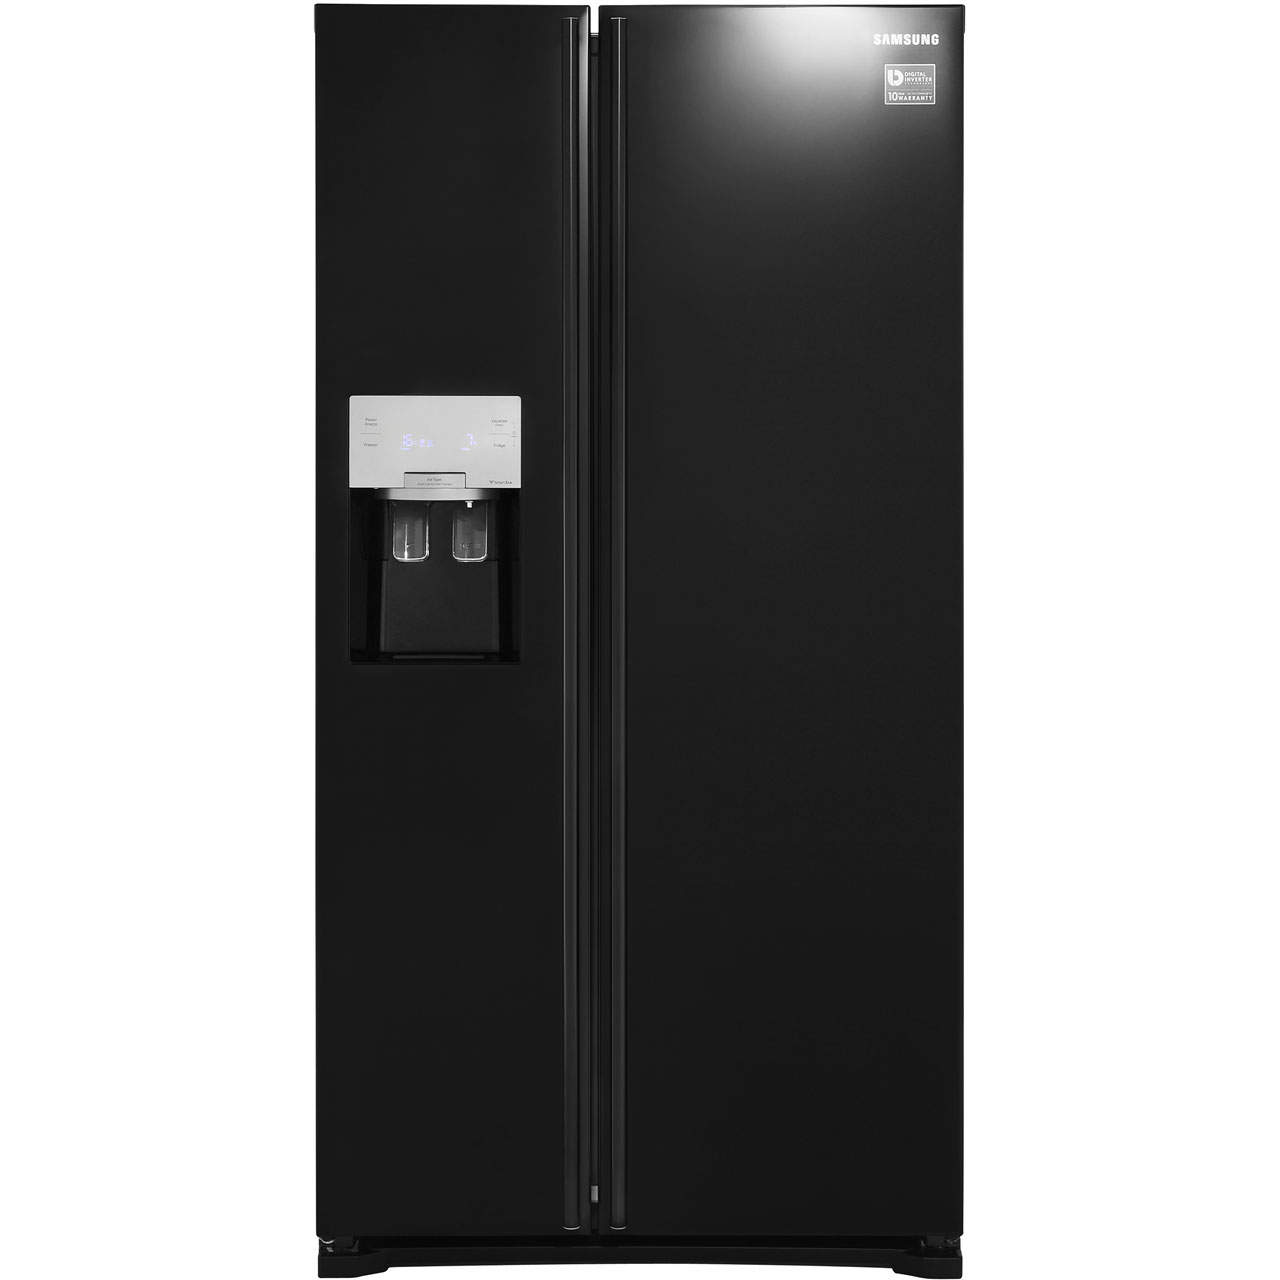 Samsung HSeries RS7567BHCBC Free Standing American Fridge Freezer in Black Gloss